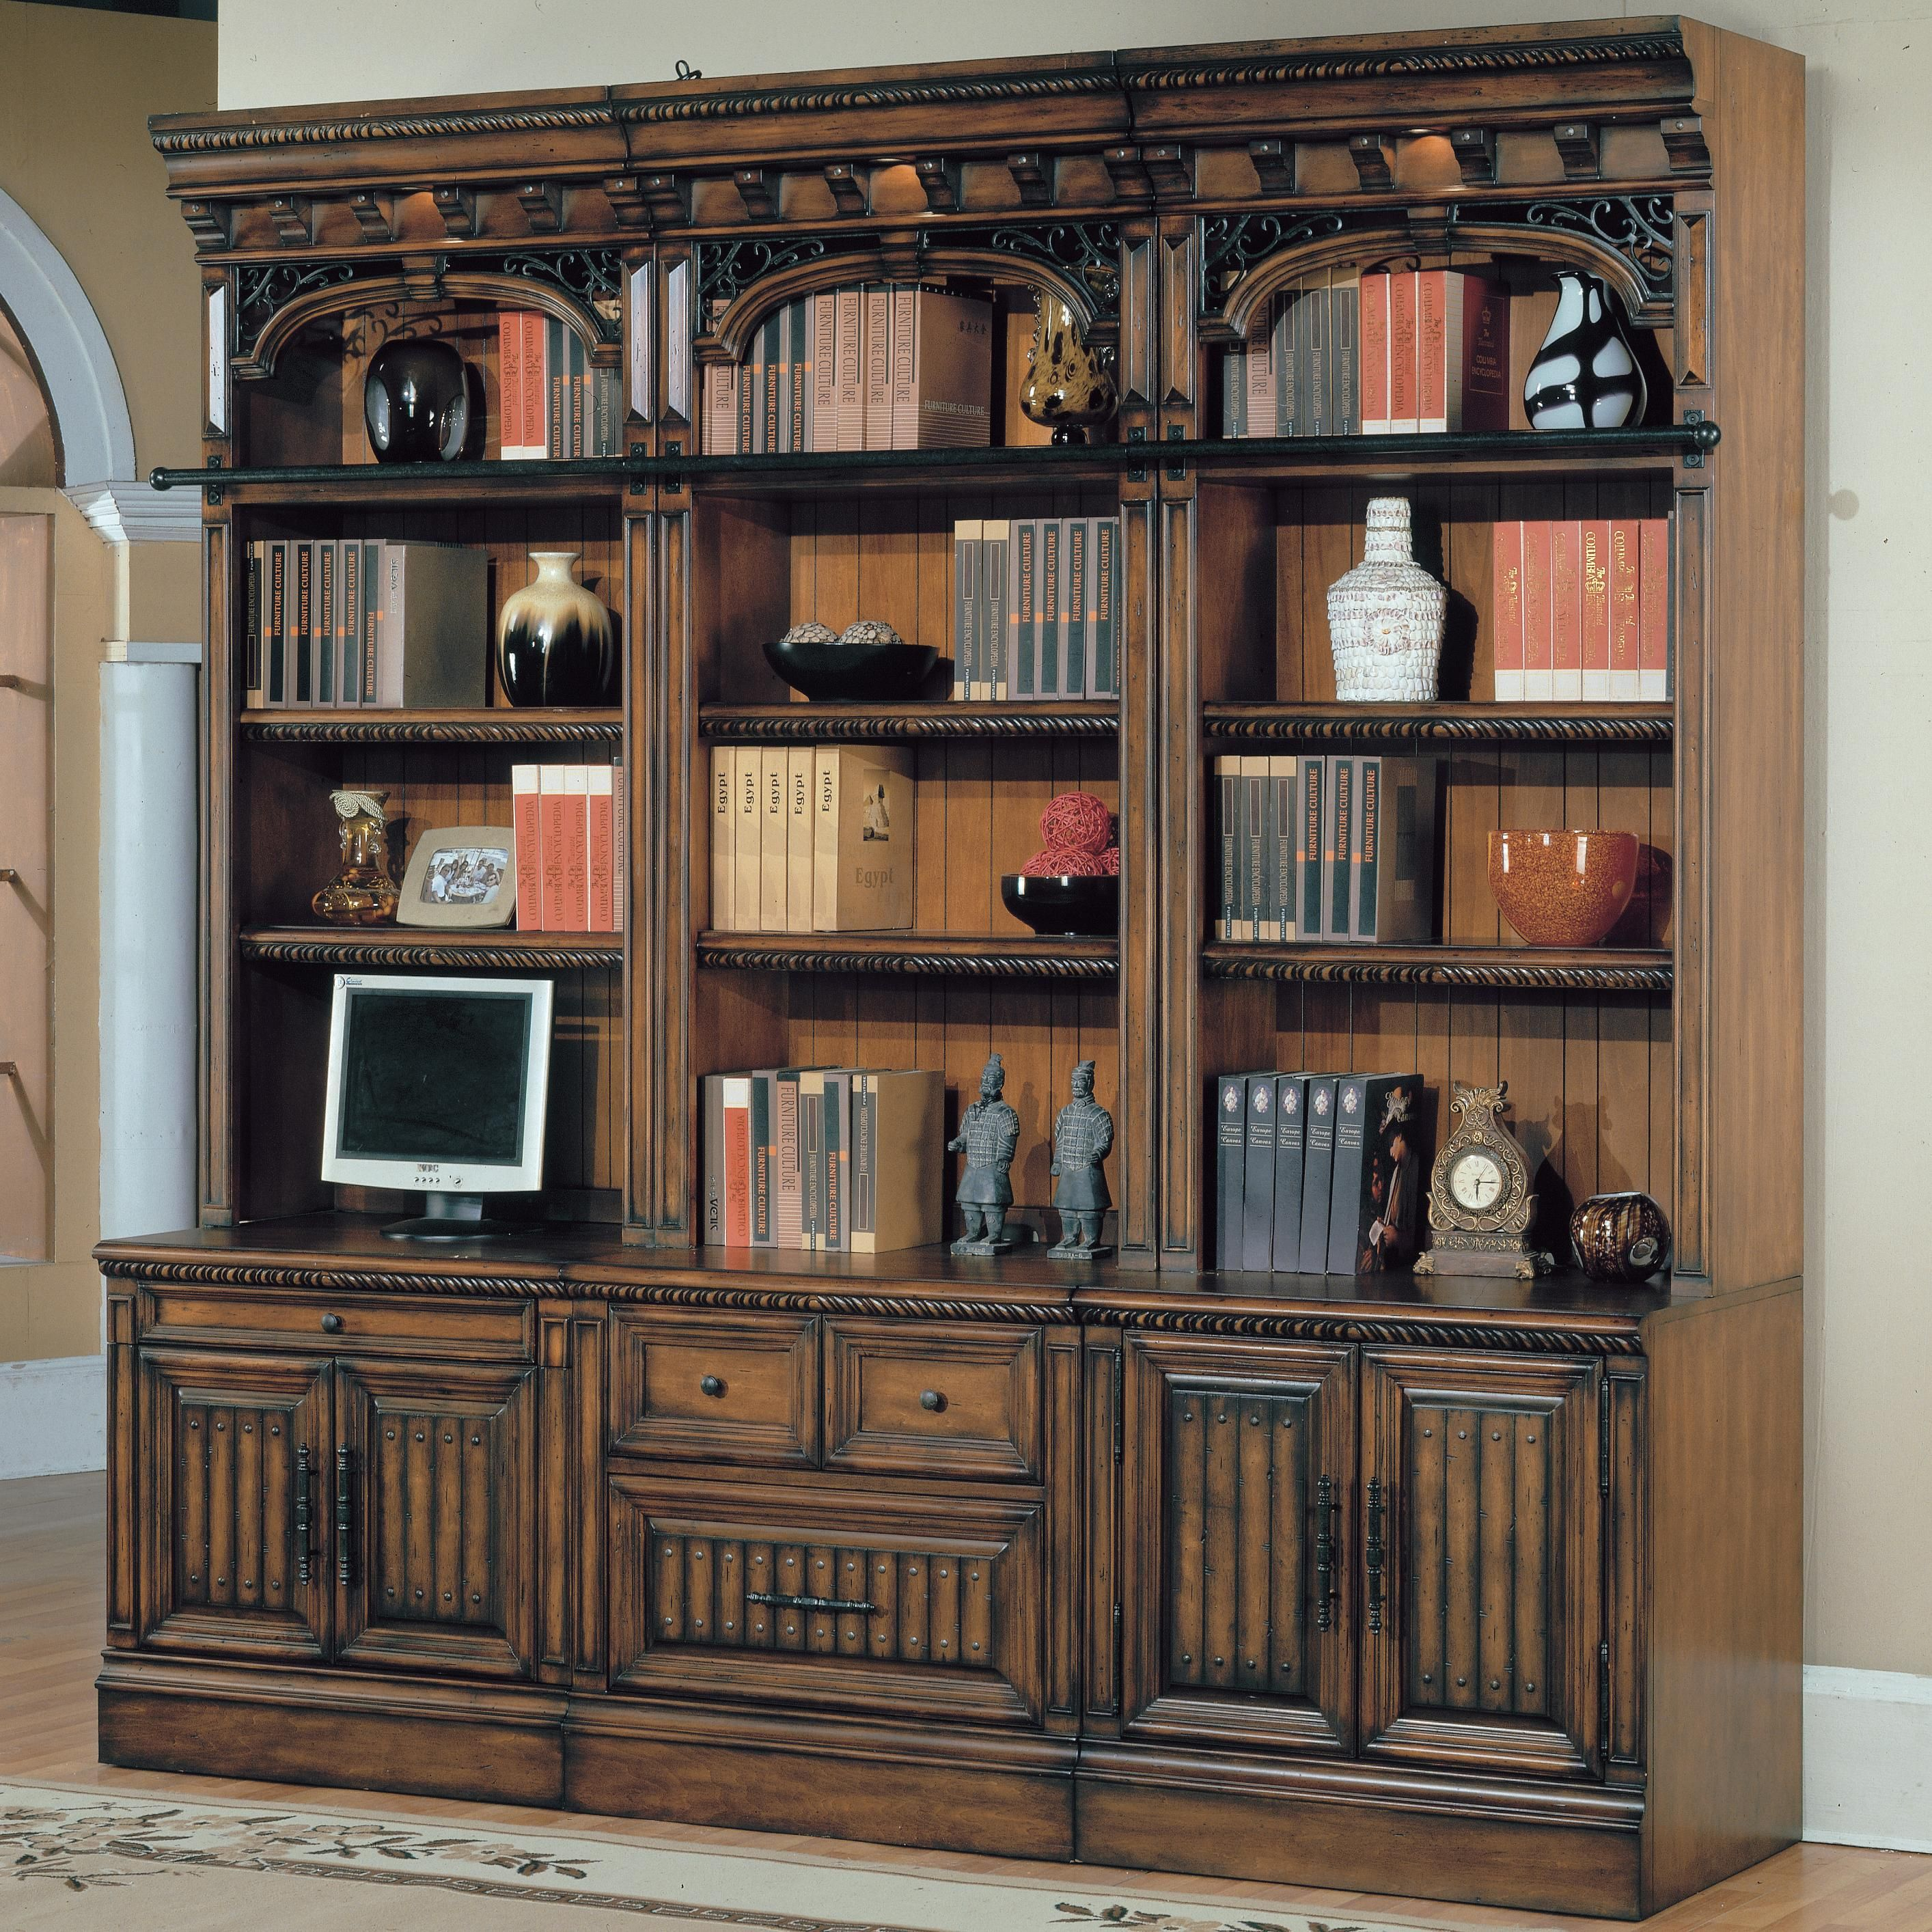 and I need a new bookcase - lucky find!